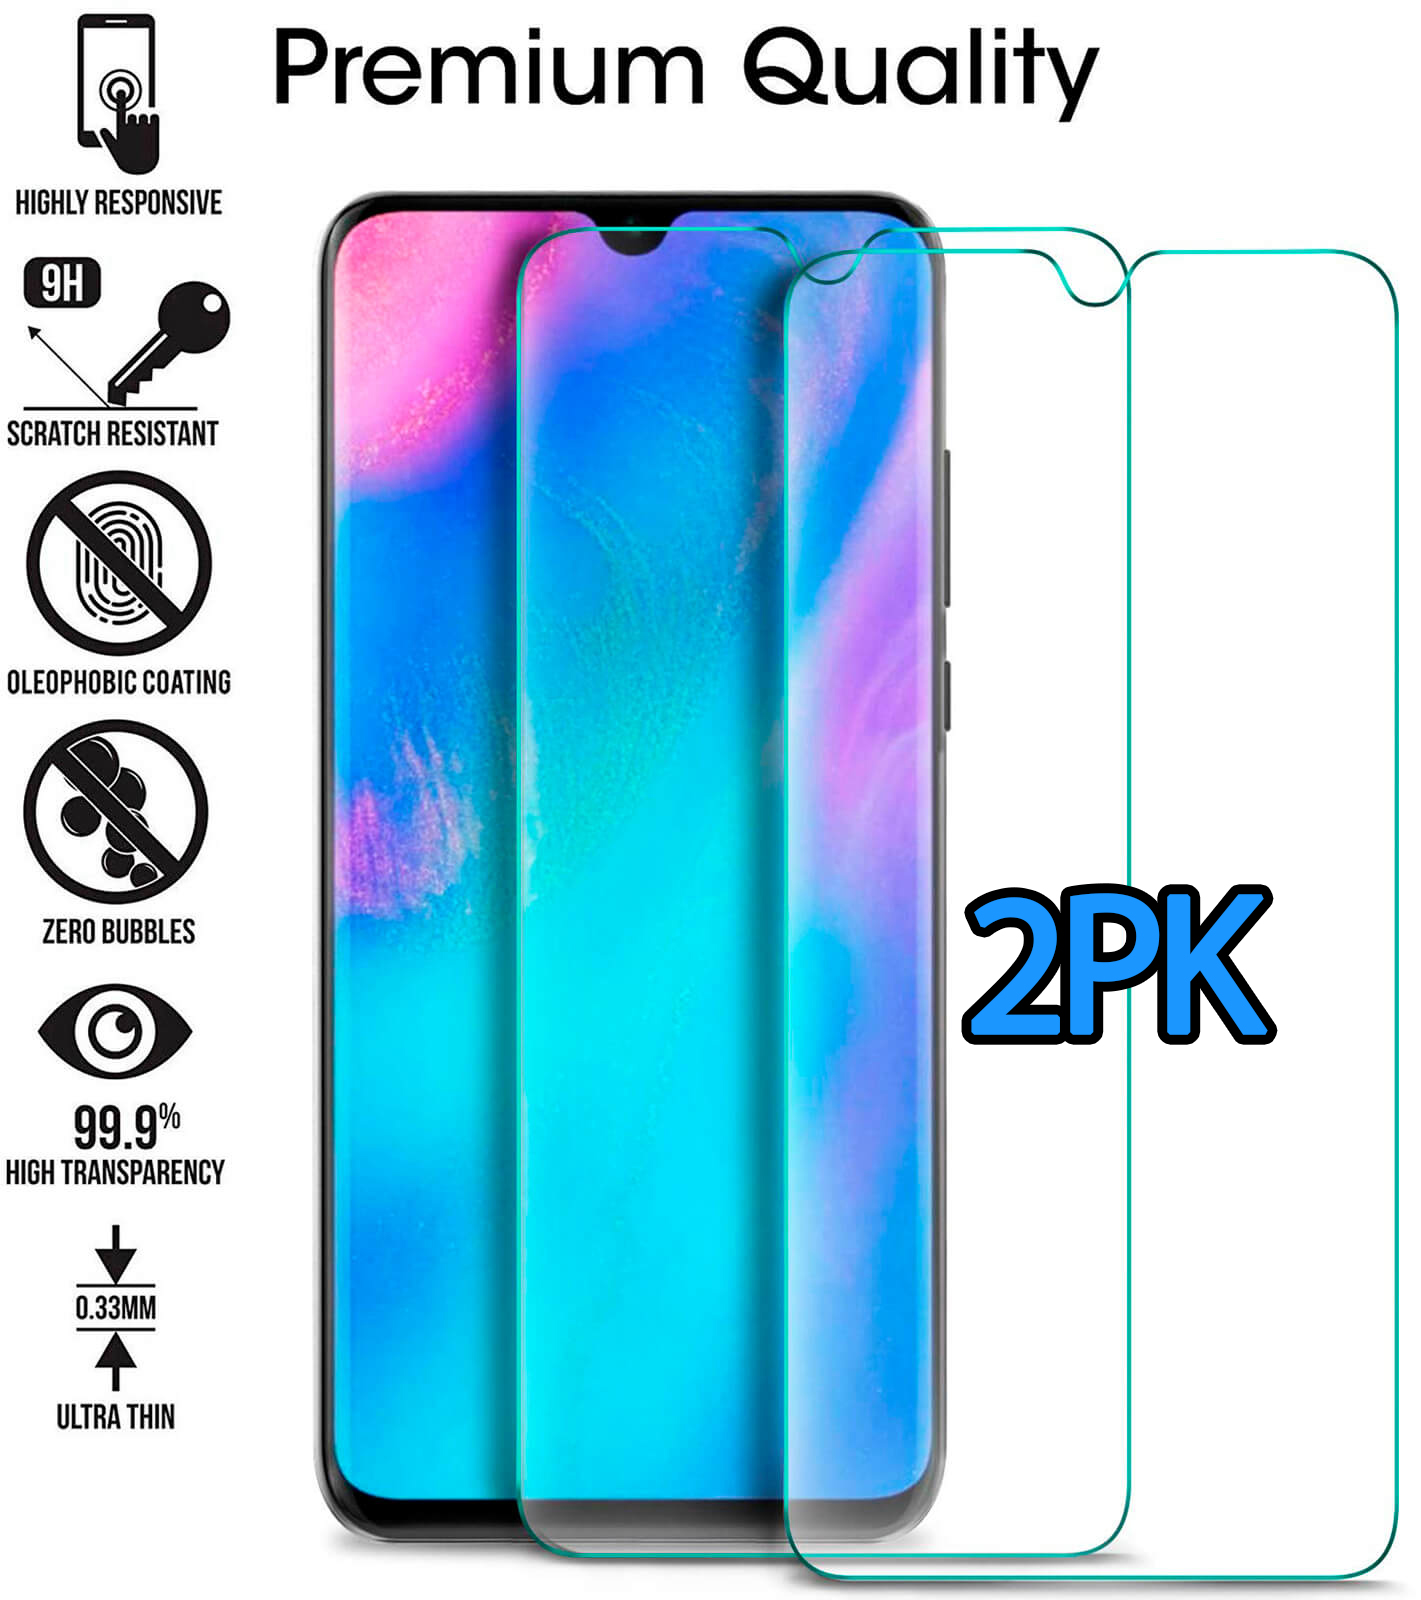 Clear-Gel-Case-For-Huawei-P30-Pro-P20-Mate-20-Lite-Tempered-Glass-Screen-Cover thumbnail 111